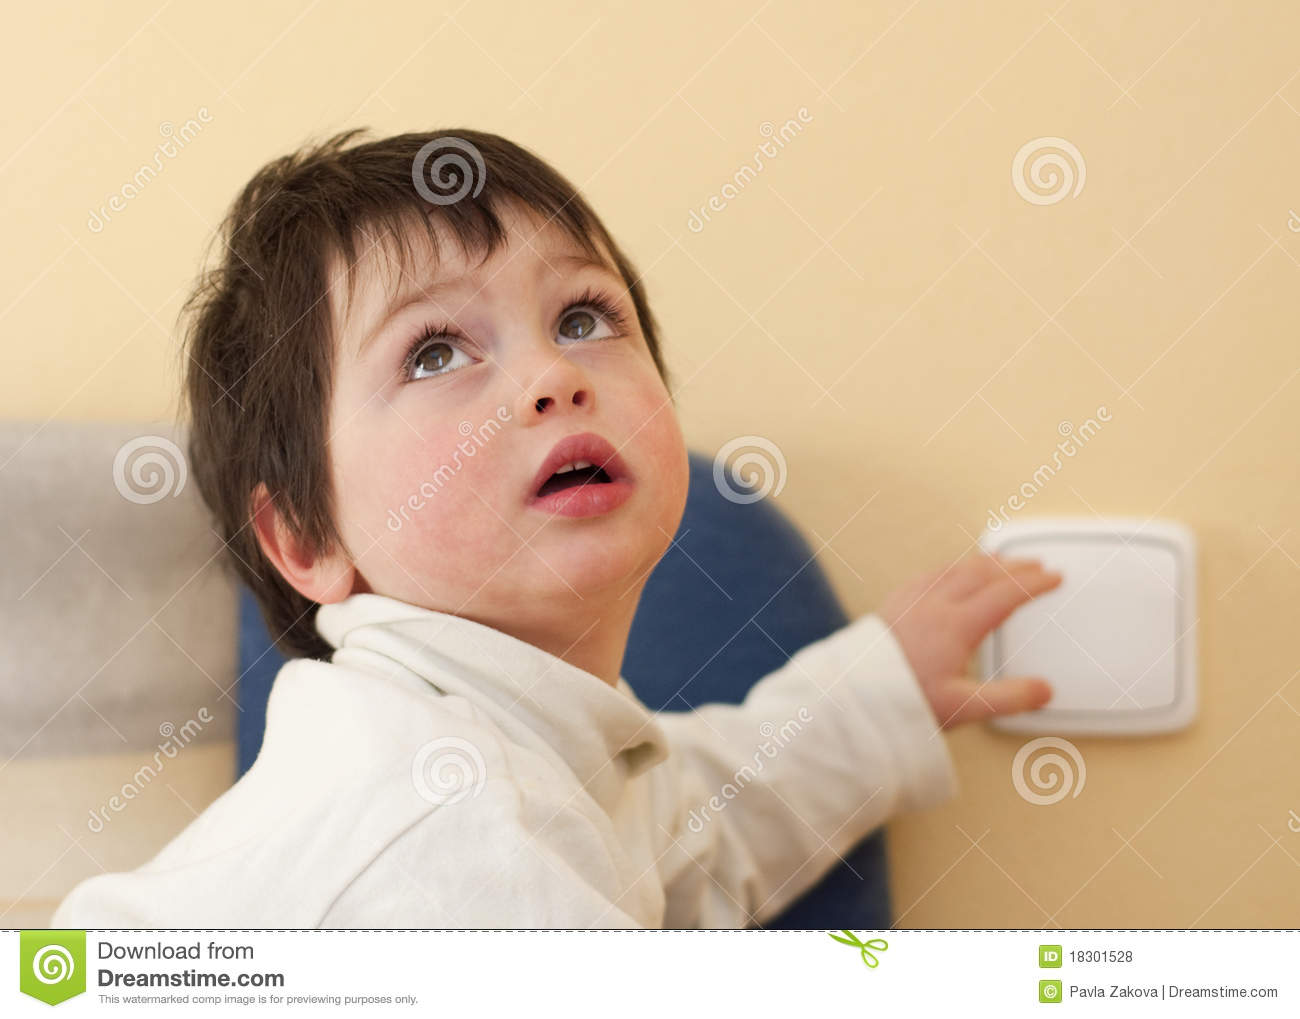 Child And A Light Switch Stock Photo Image Of Caucasian